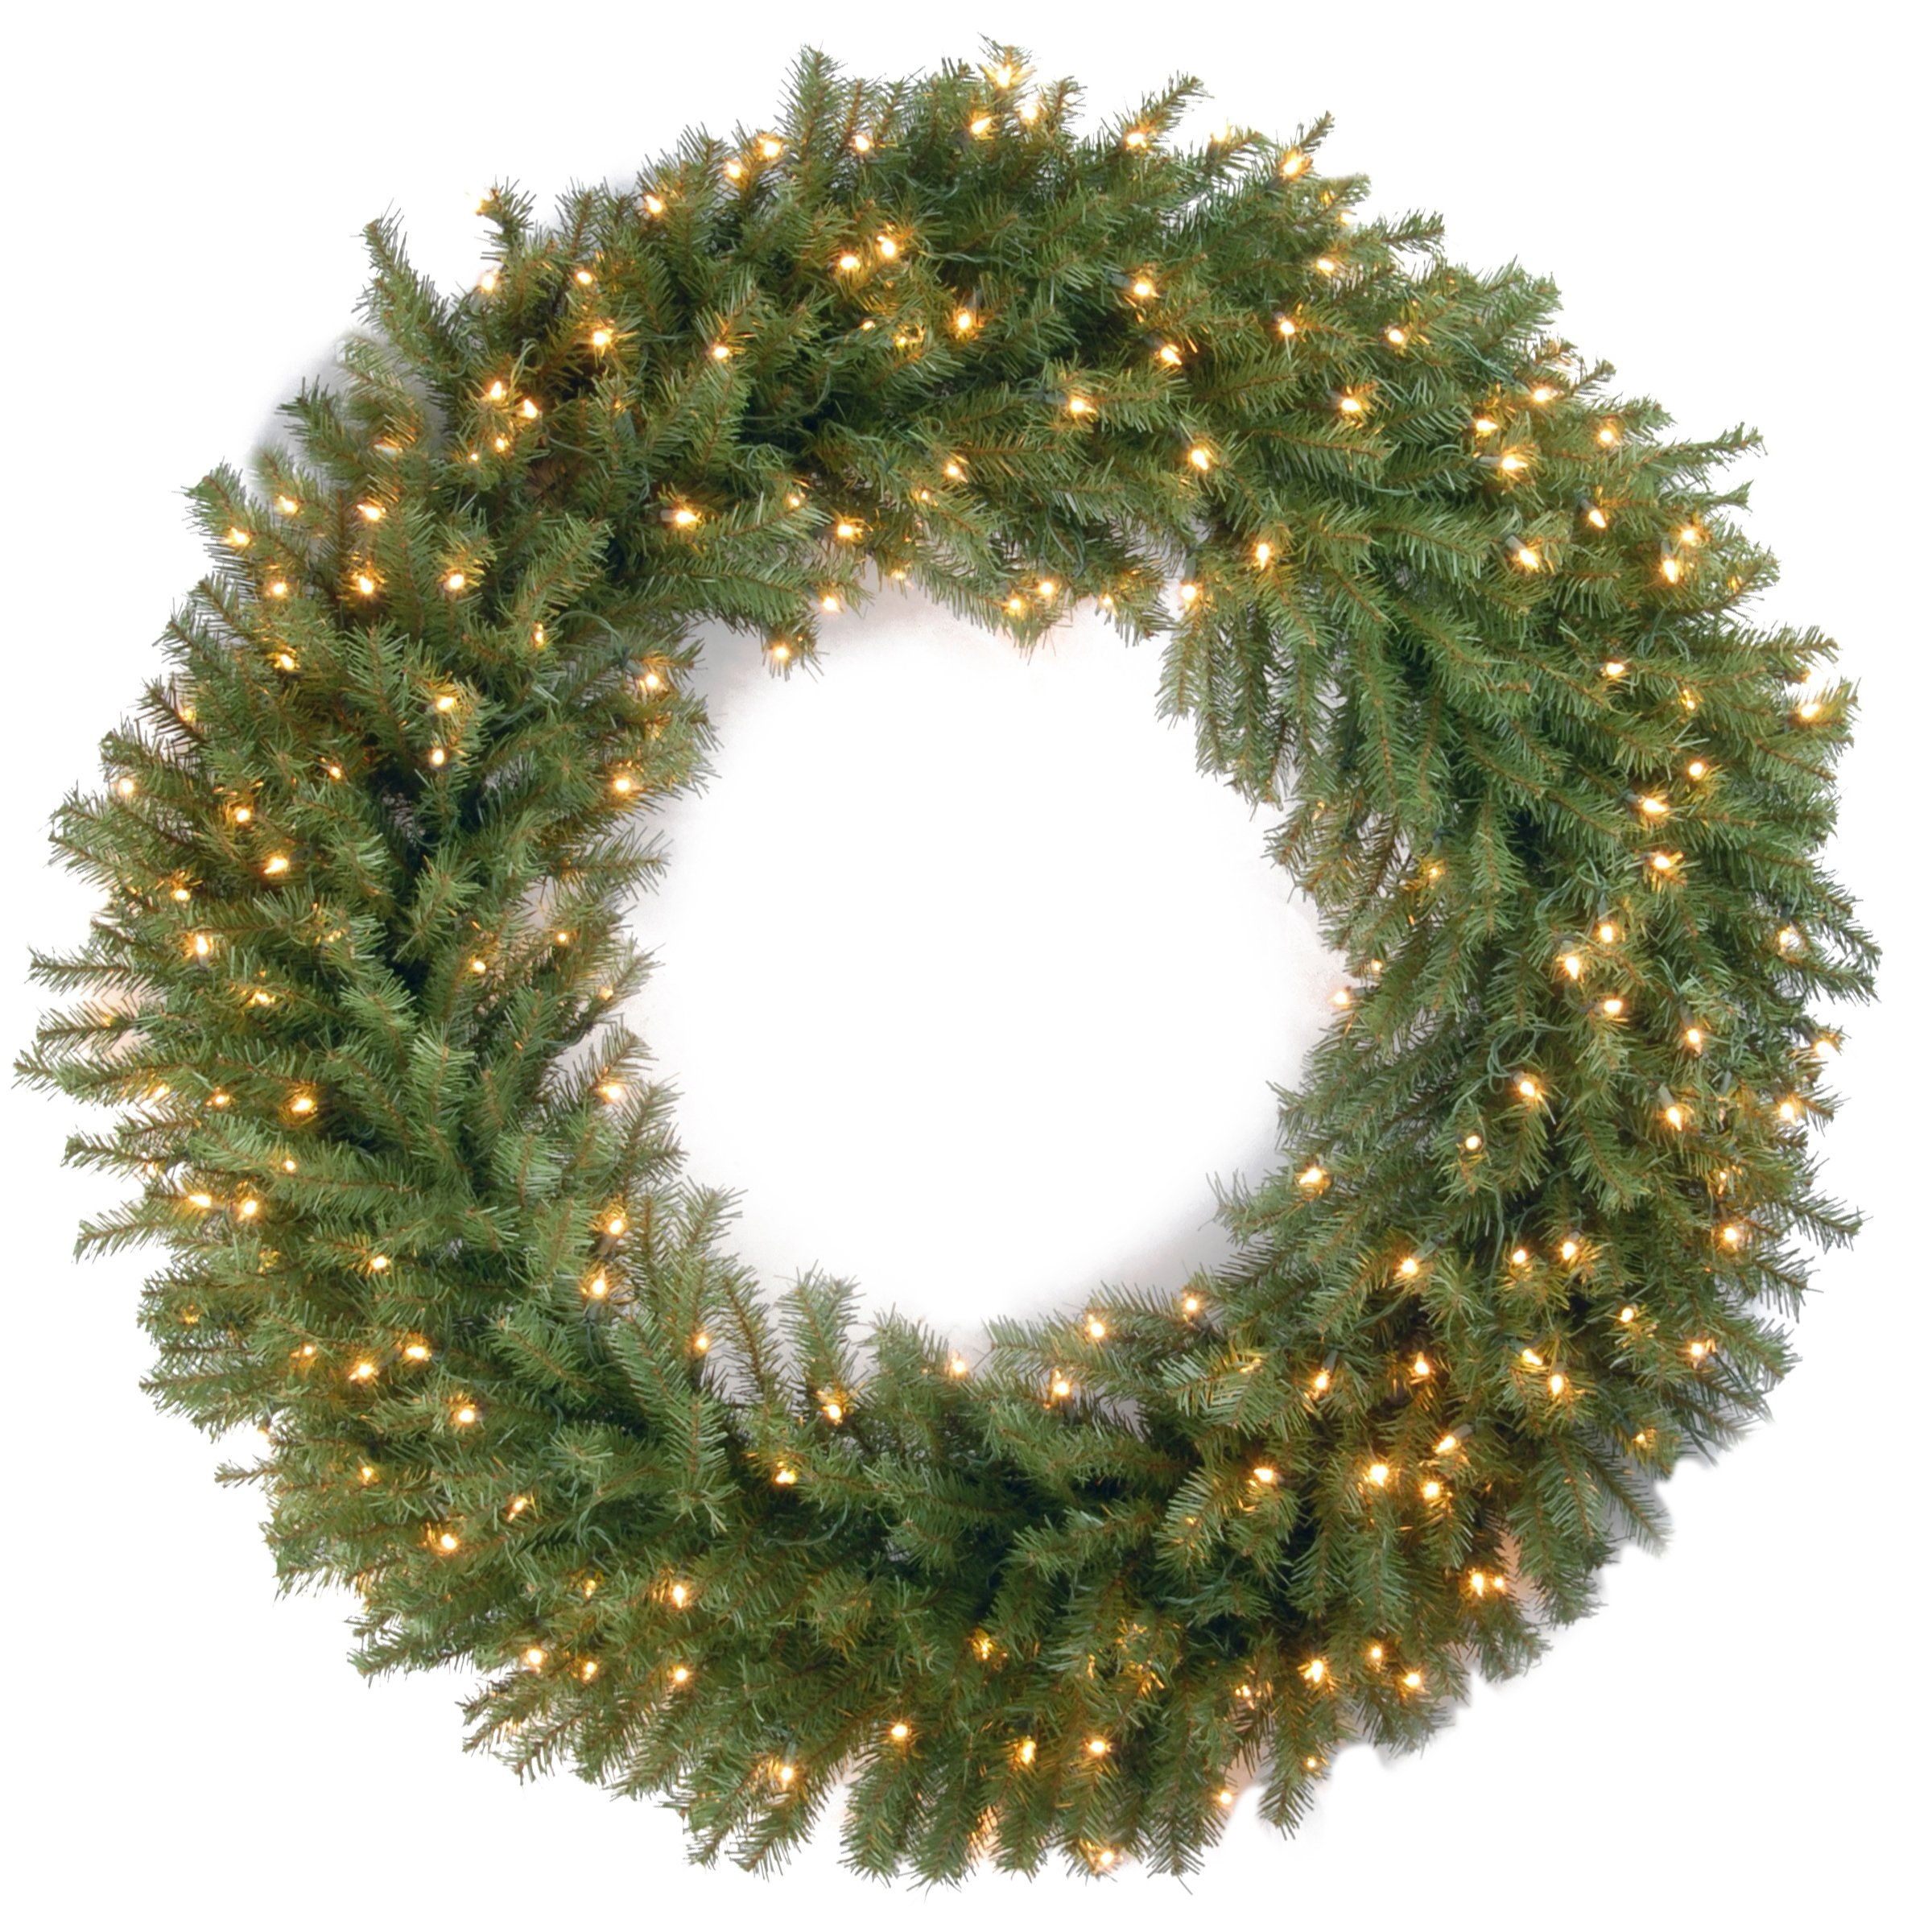 National Tree 48 Inch Norwood Fir Wreath with 200 Clear Lights (NF-48WLO) by National Tree Company